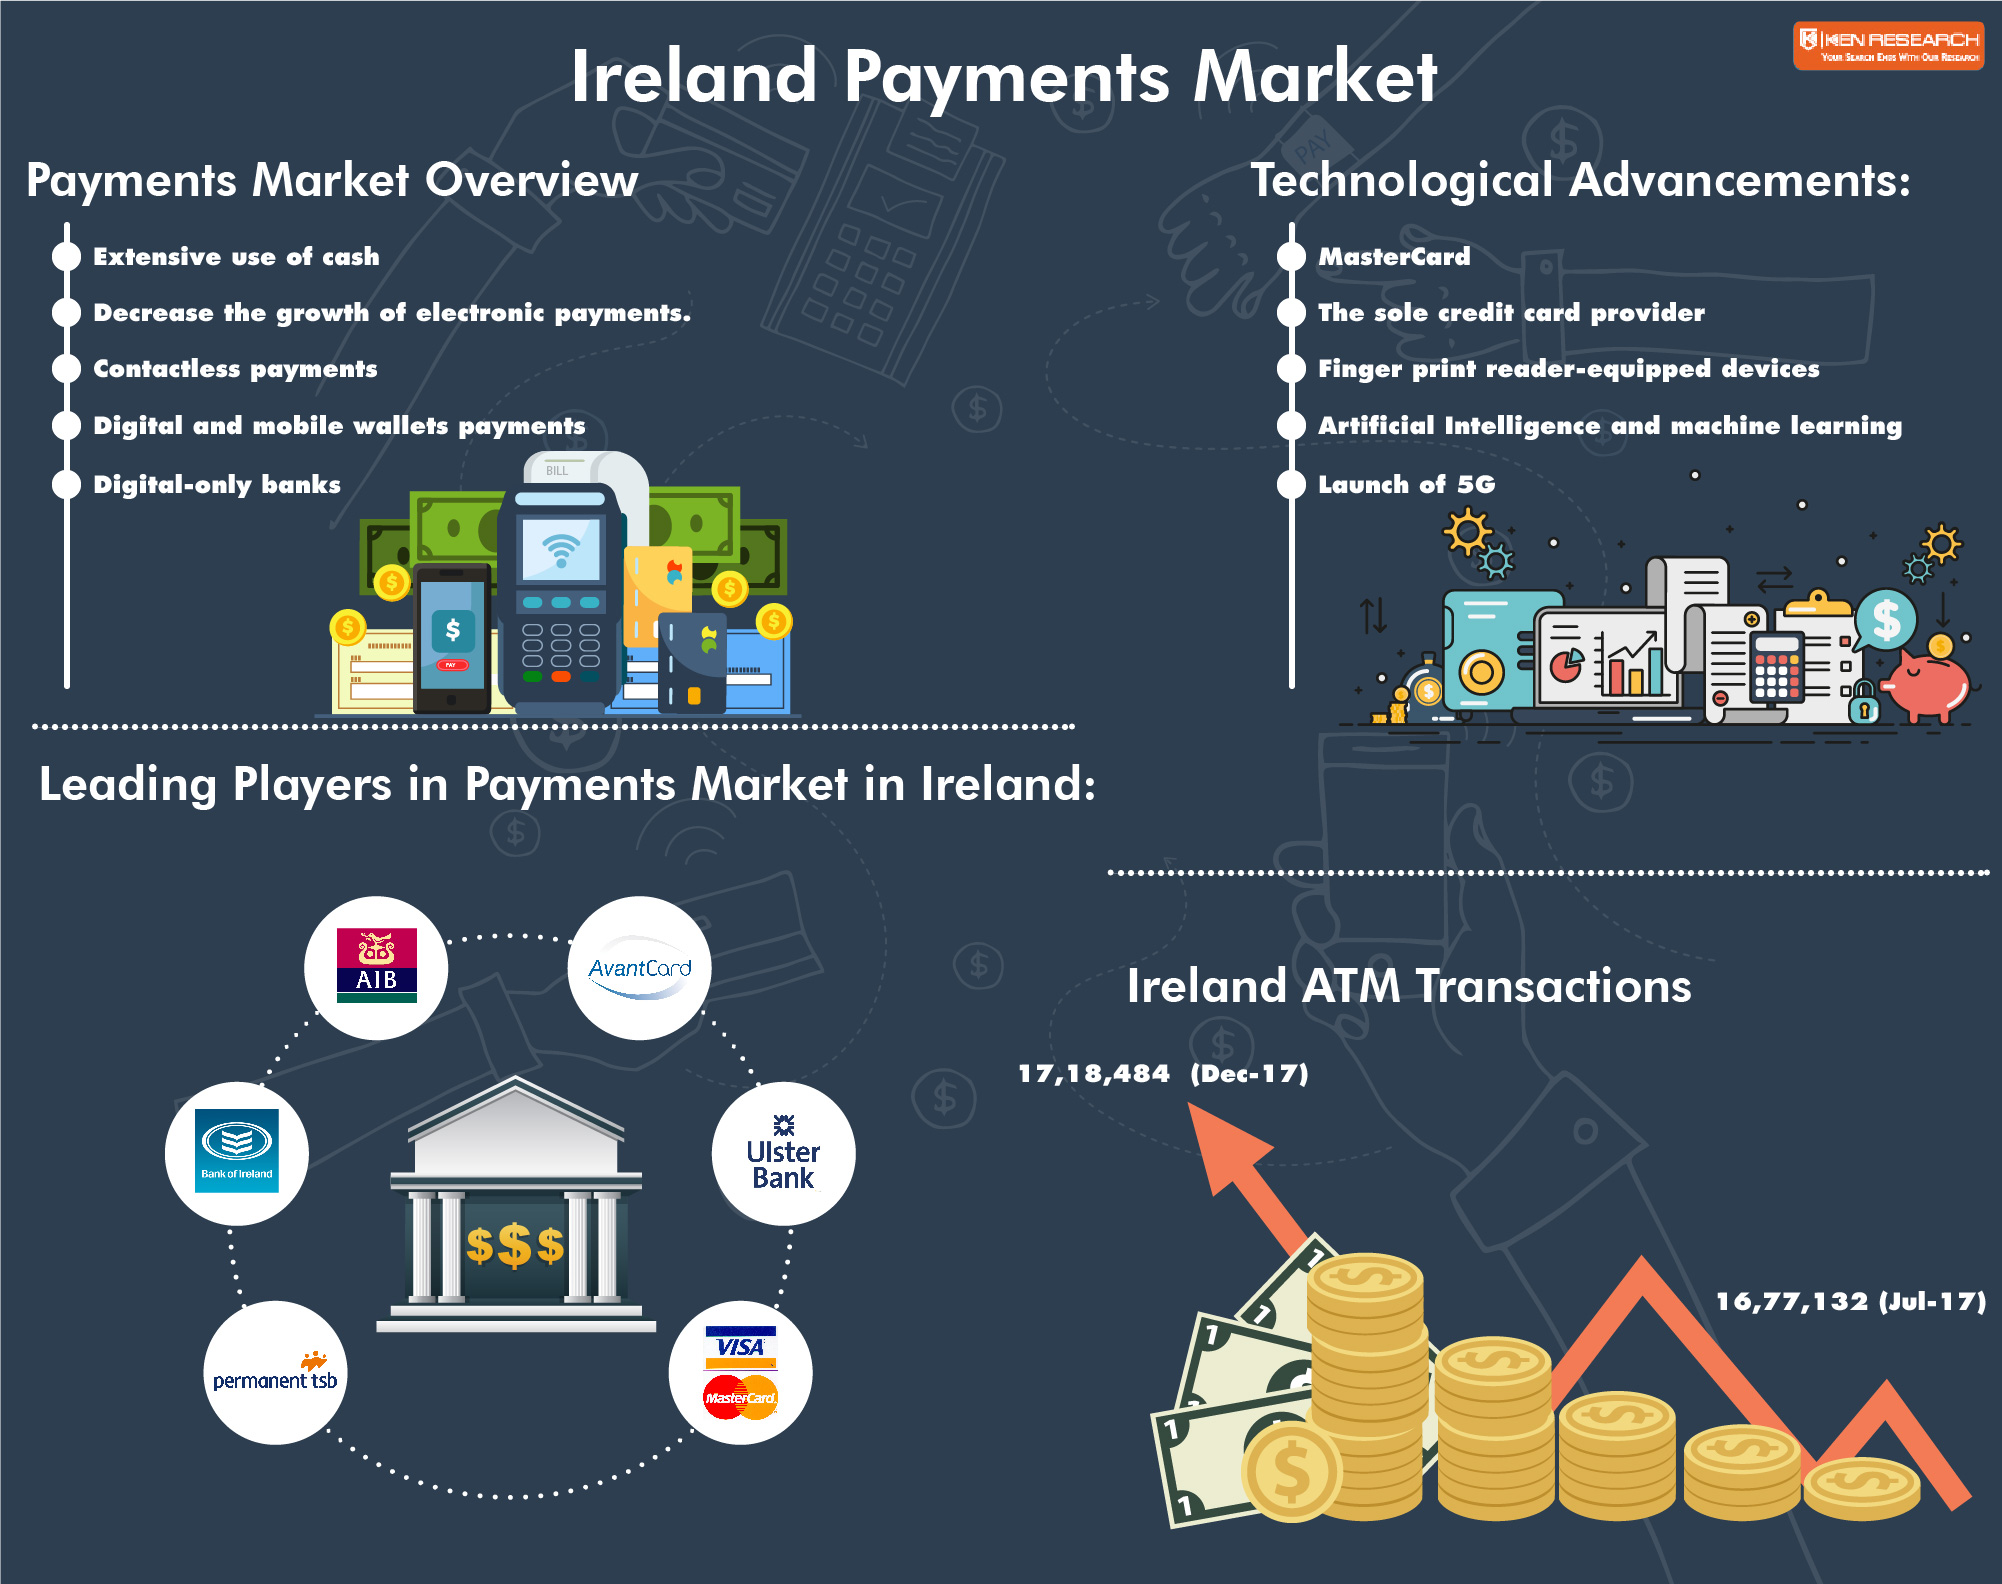 Ireland Payments Market